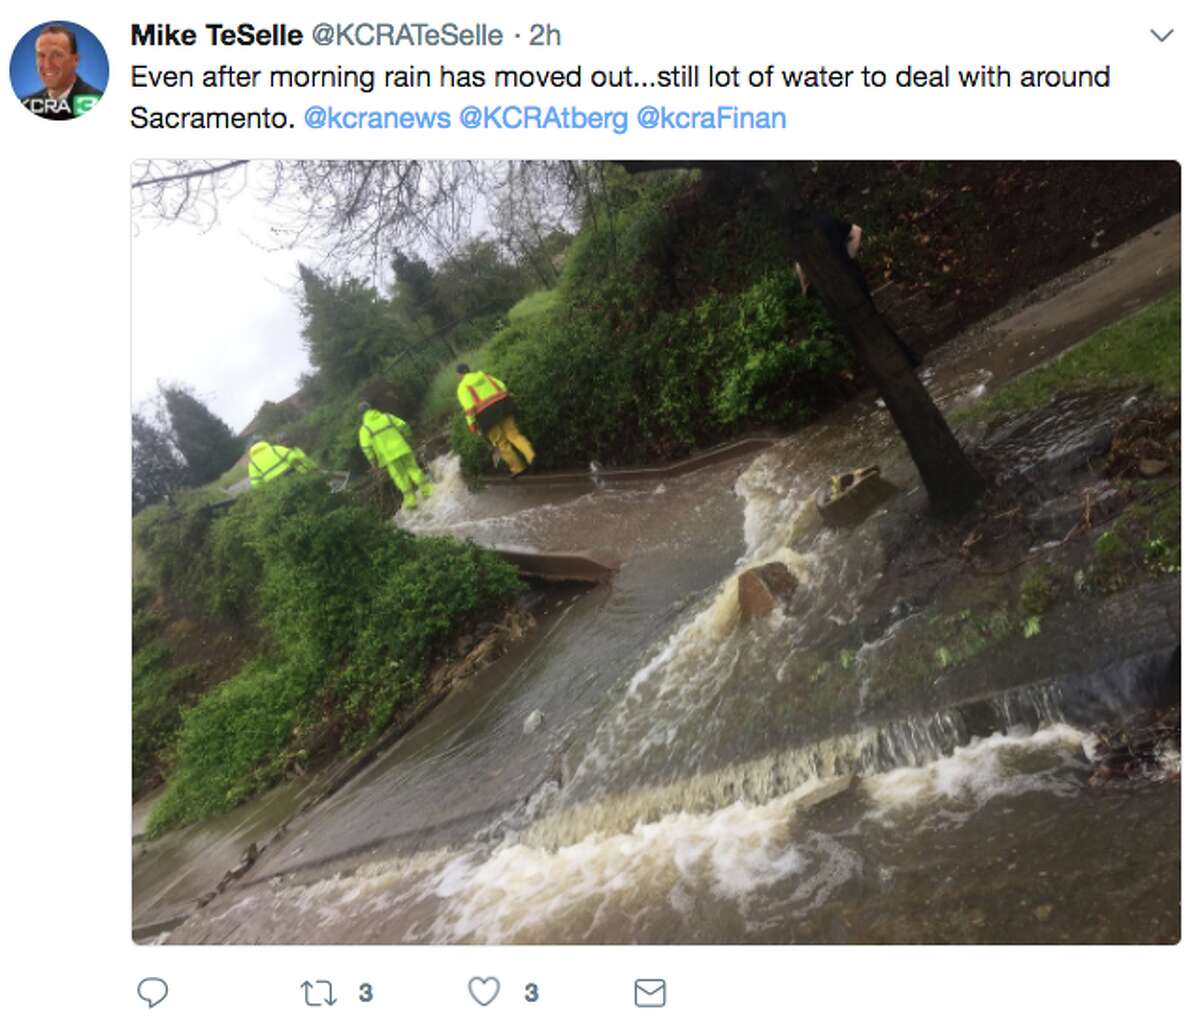 Mike TeSelle of KCRA-TV shared this image of flooding at Iron Point Road in the Sacramento area on March 22, 2018.